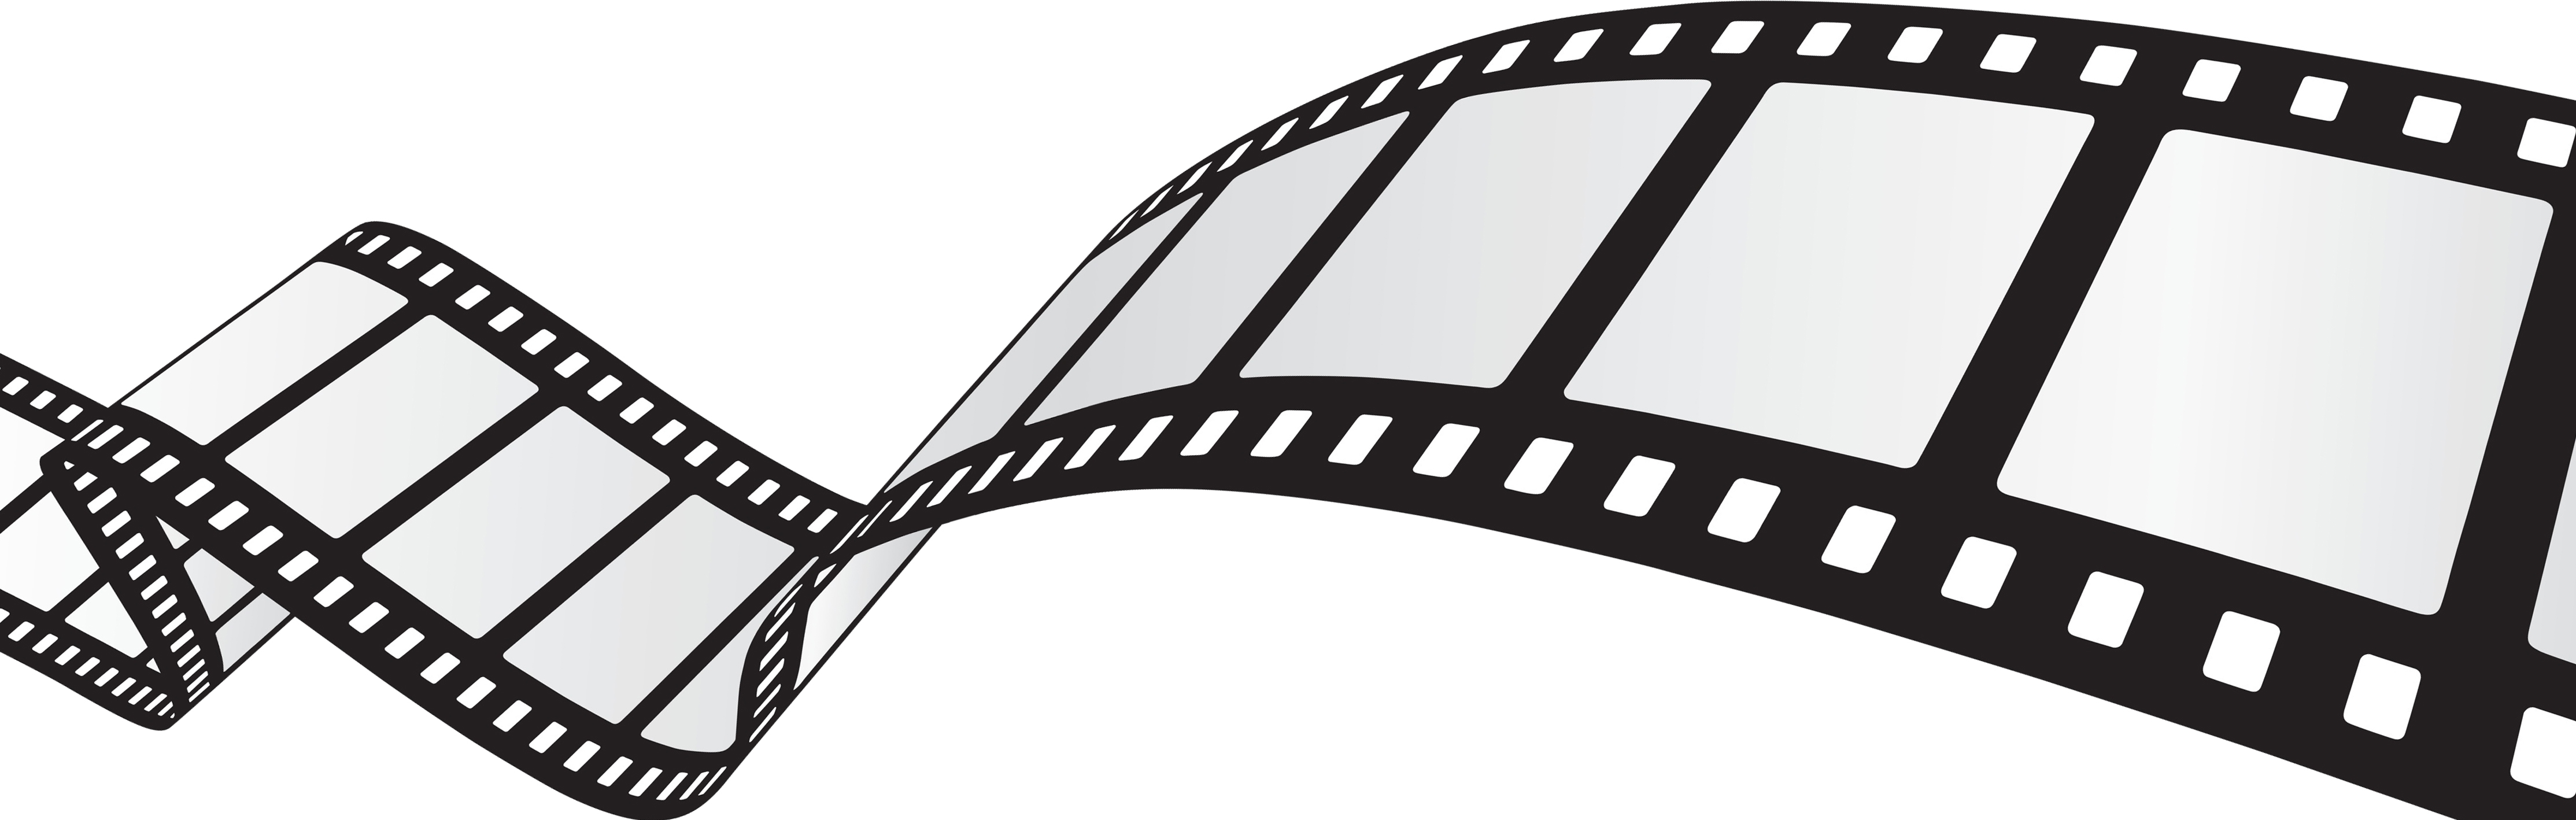 Photography clipart film reel Library Film Movie on Download